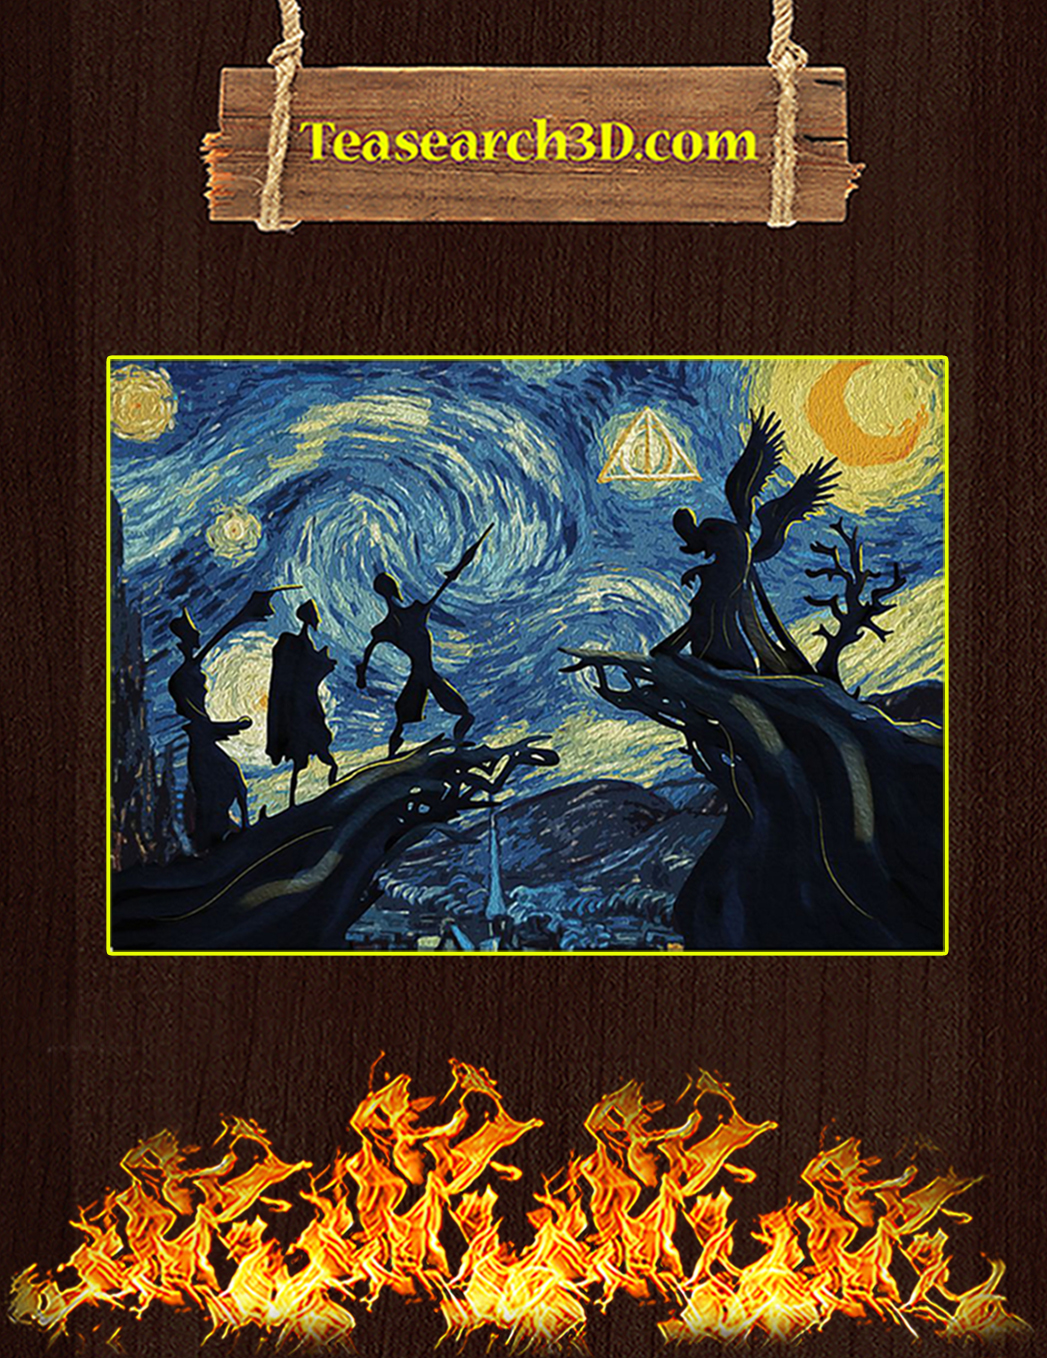 Starry night van gogh deathly hallows harry potter poster A1